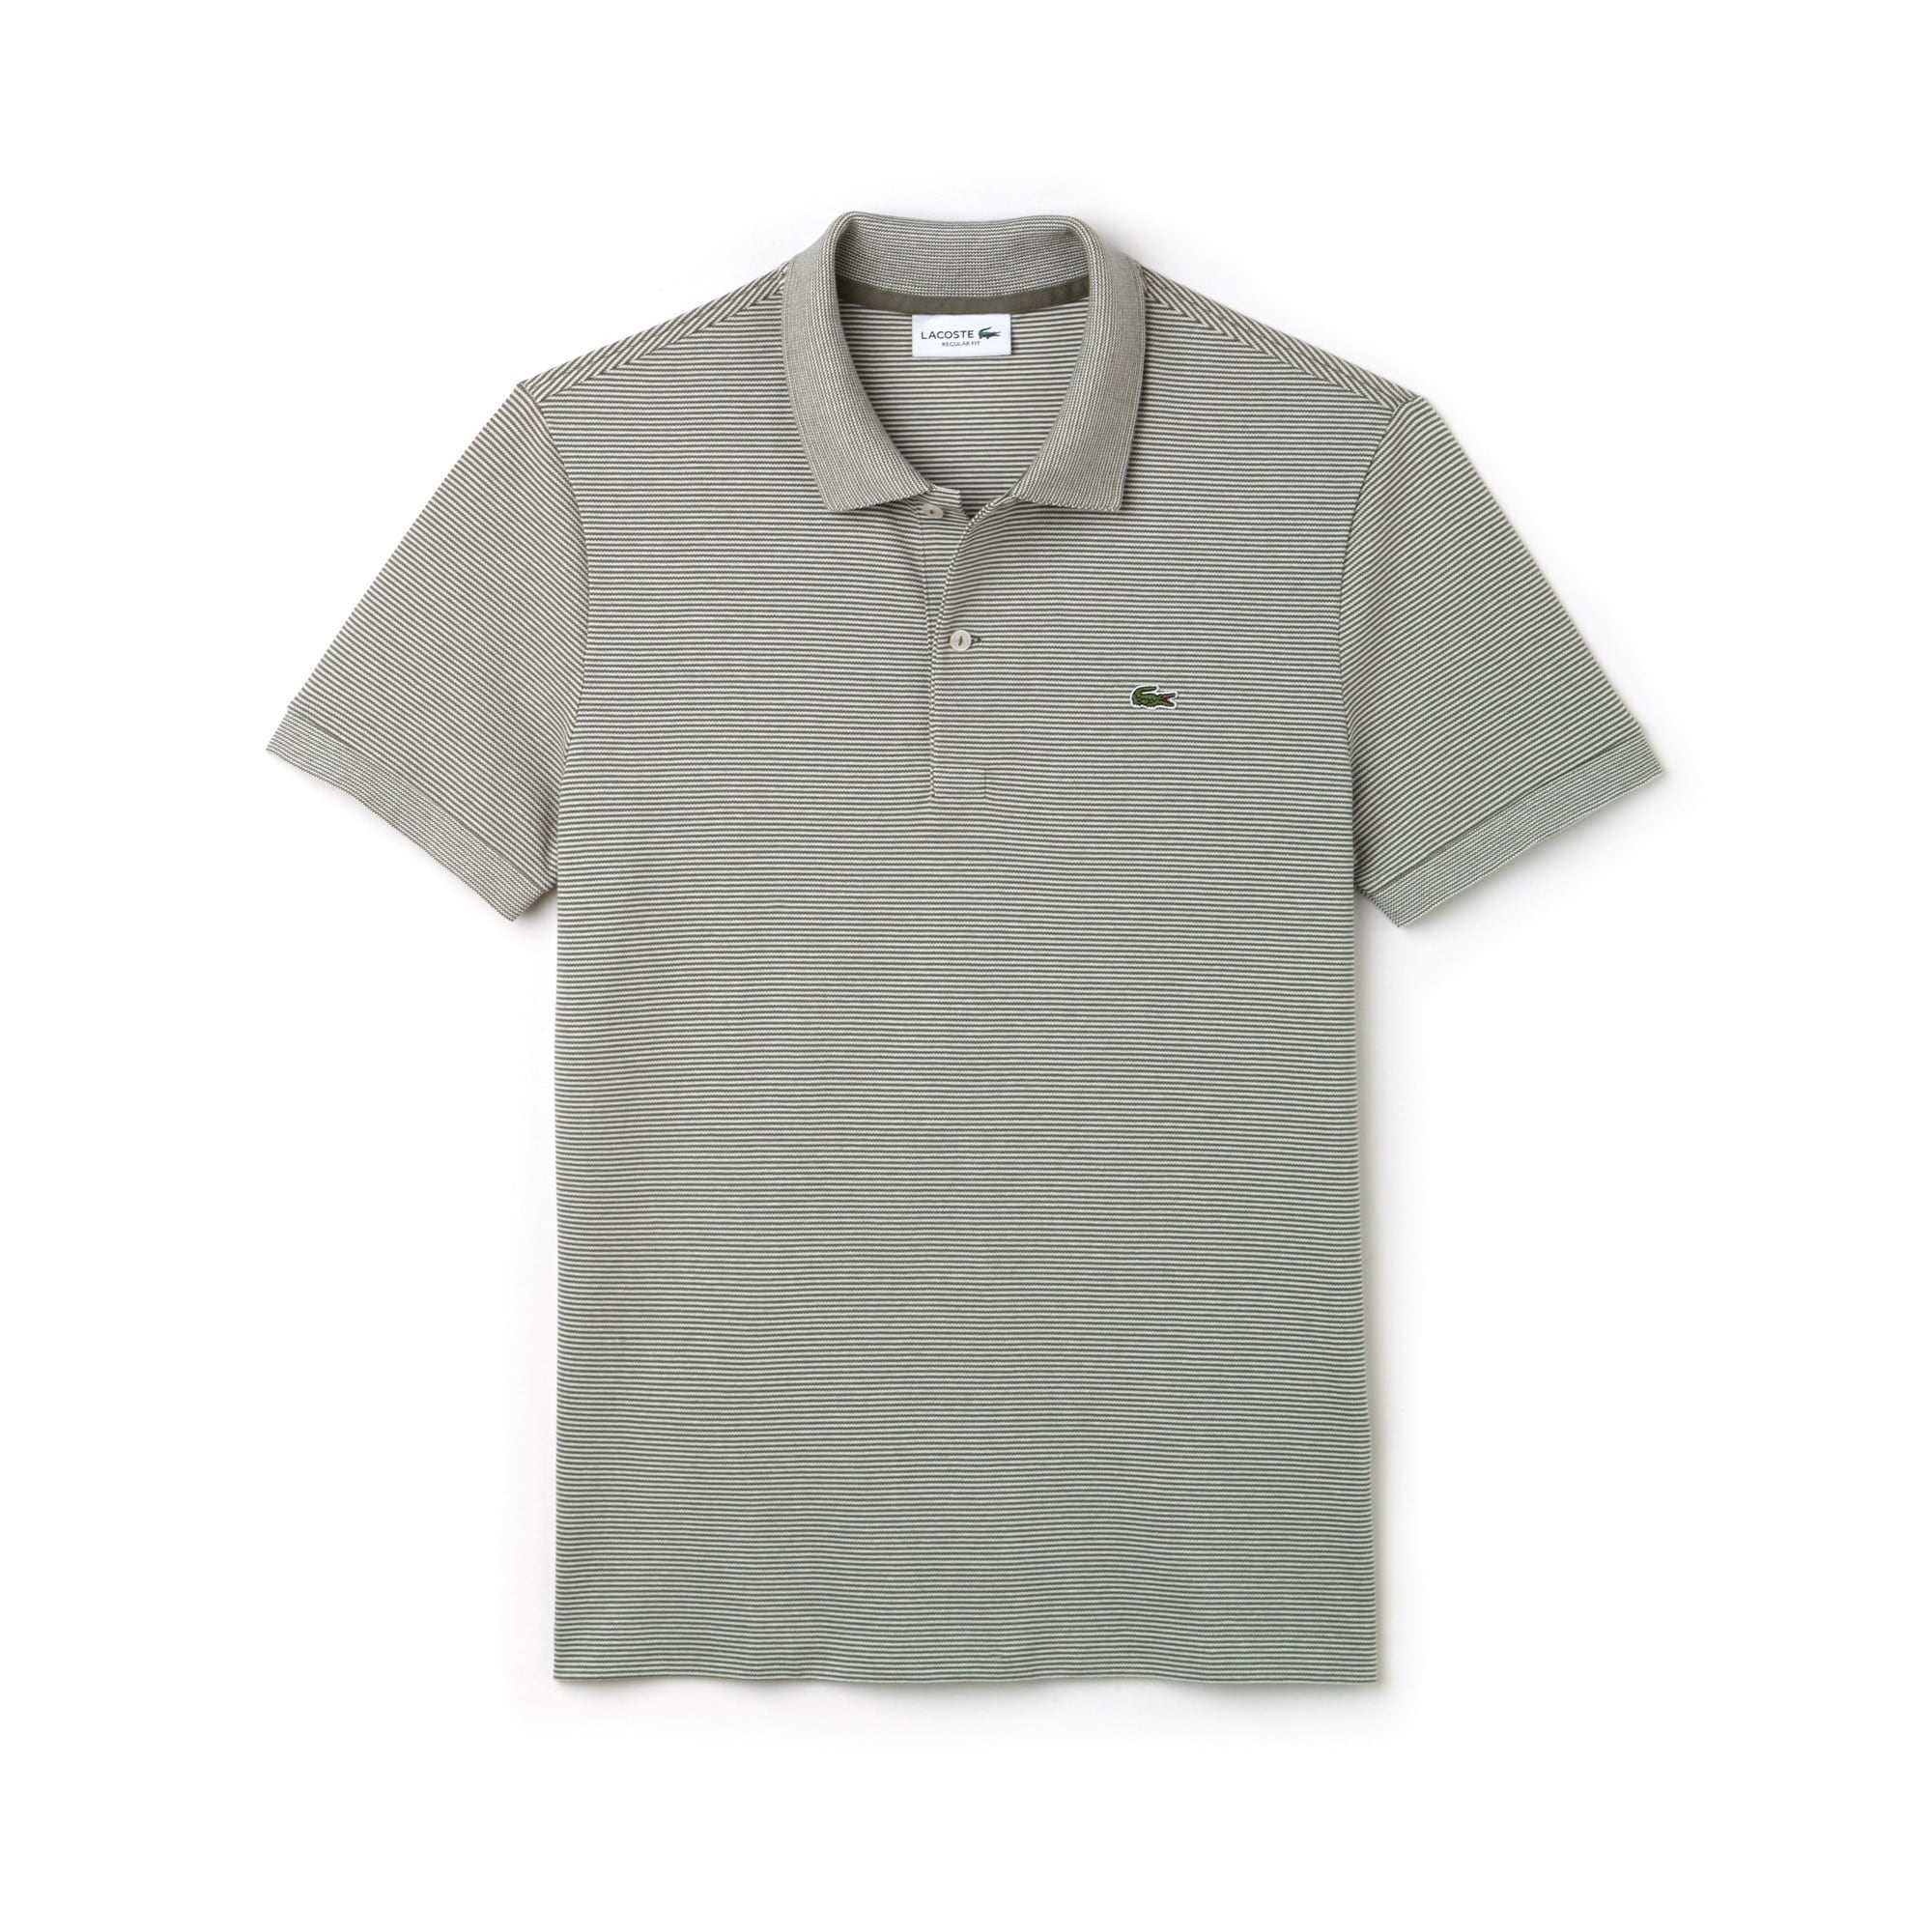 b41aad2539461 Buy Lacoste Polo T Shirts Online India